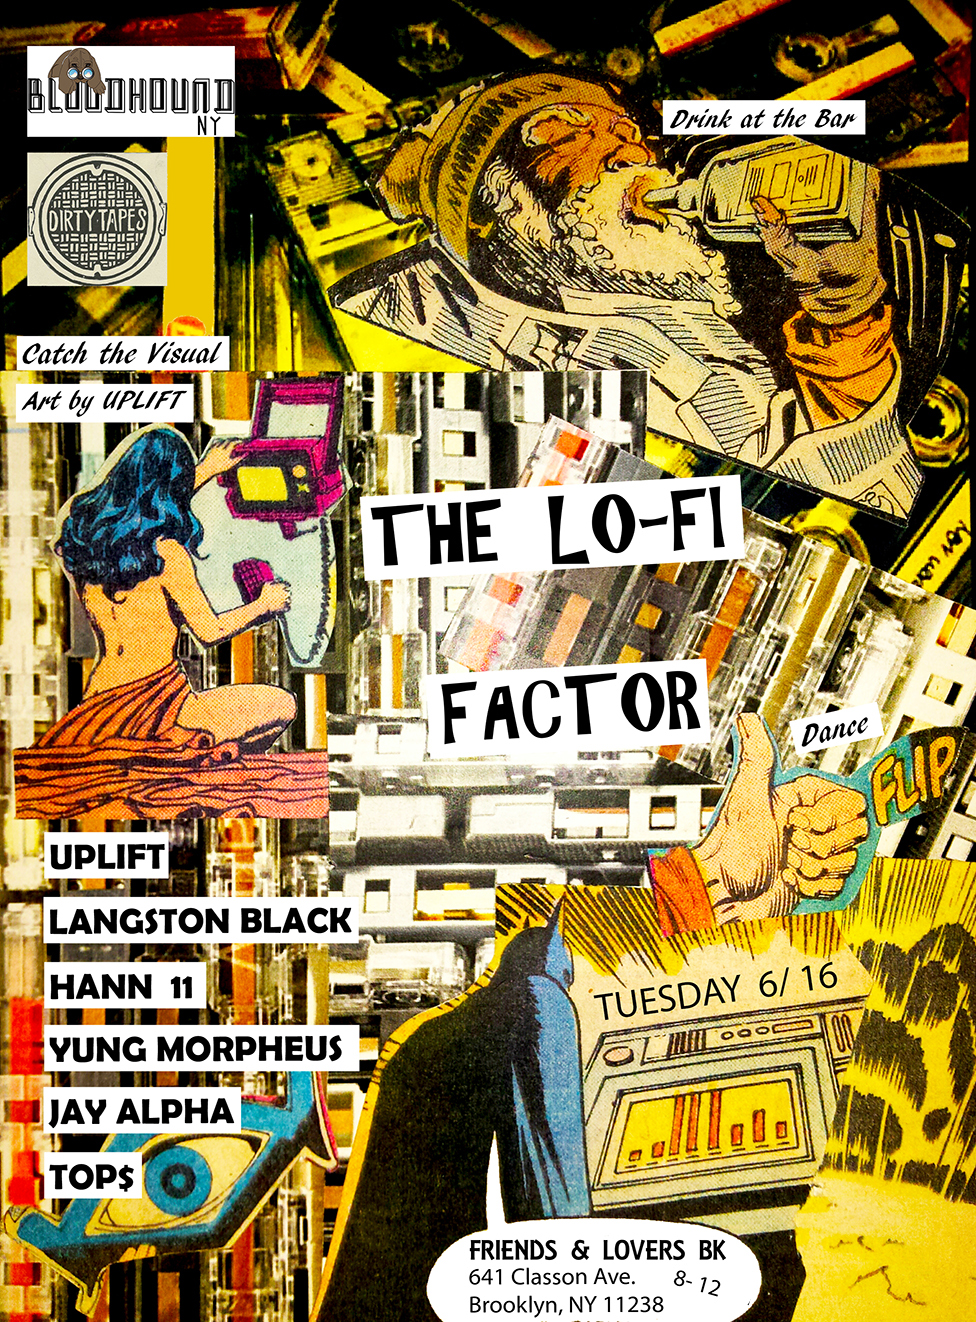 Bloodhound NY flyer version- The Lo-Fi Factor showcase presented by Bloodhound NY and Dirty Tapes